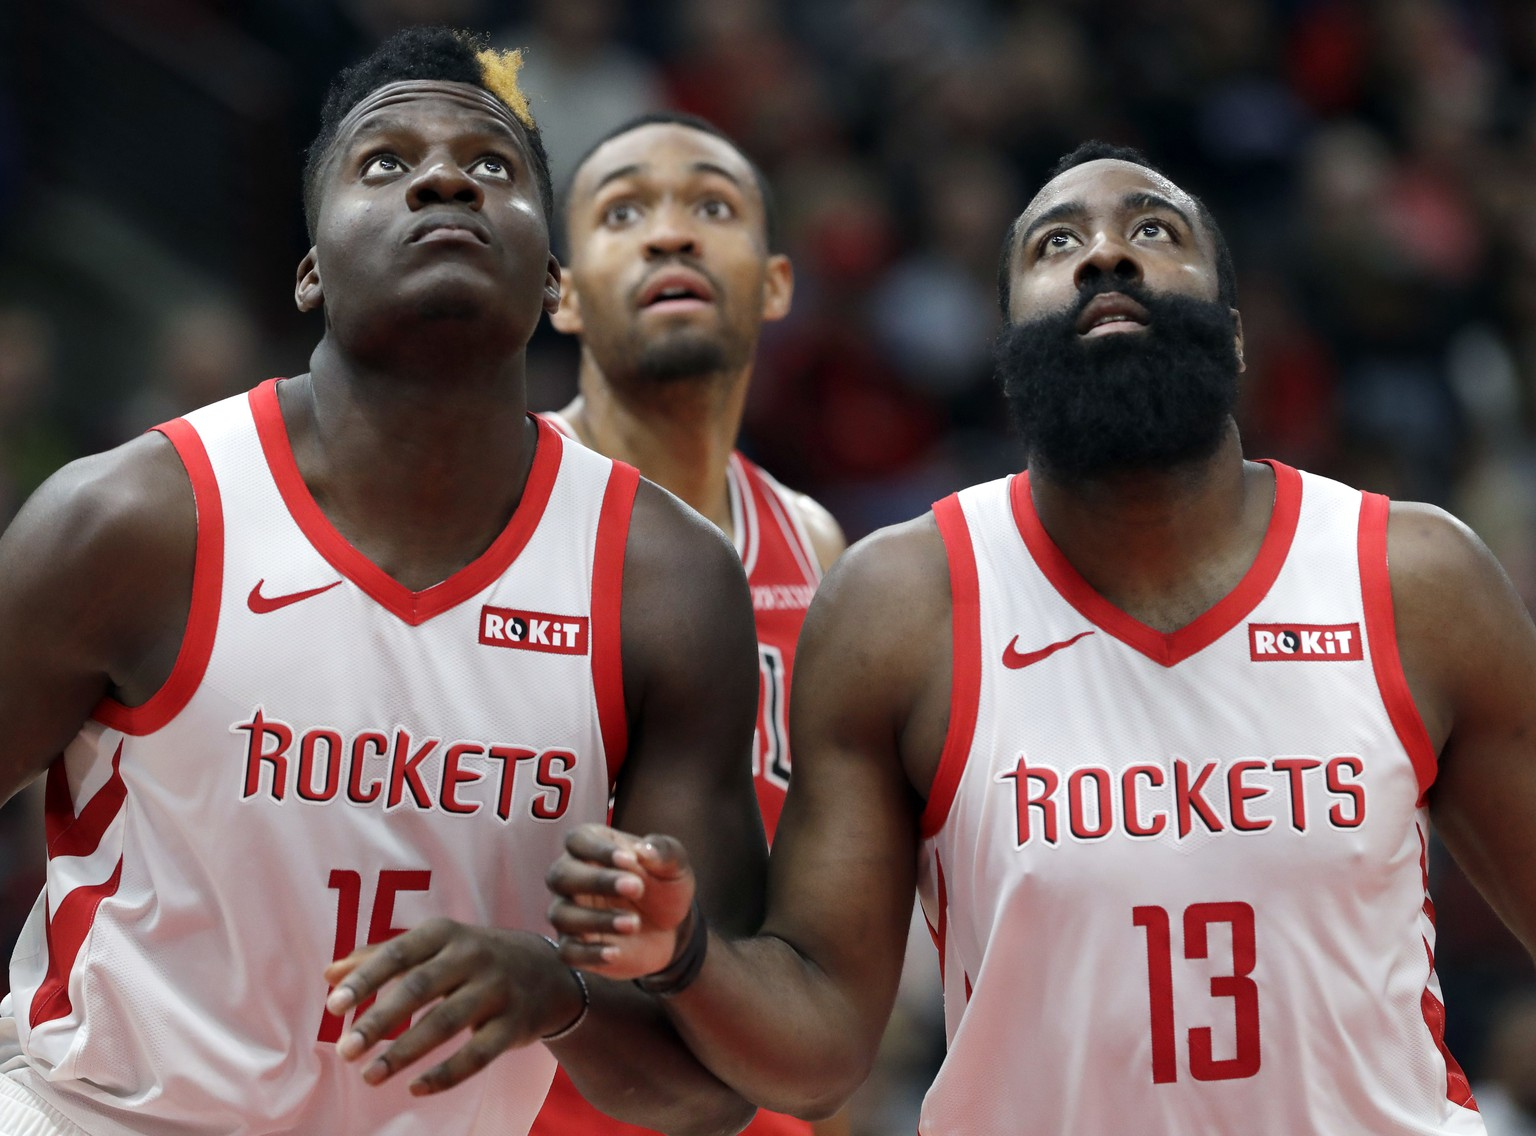 Houston Rockets center Clint Capela, left, and guard James Harden watch the ball during the second half of an NBA basketball game against the Chicago Bulls, Saturday, Nov. 3, 2018, in Chicago. (AP Photo/Nam Y. Huh)